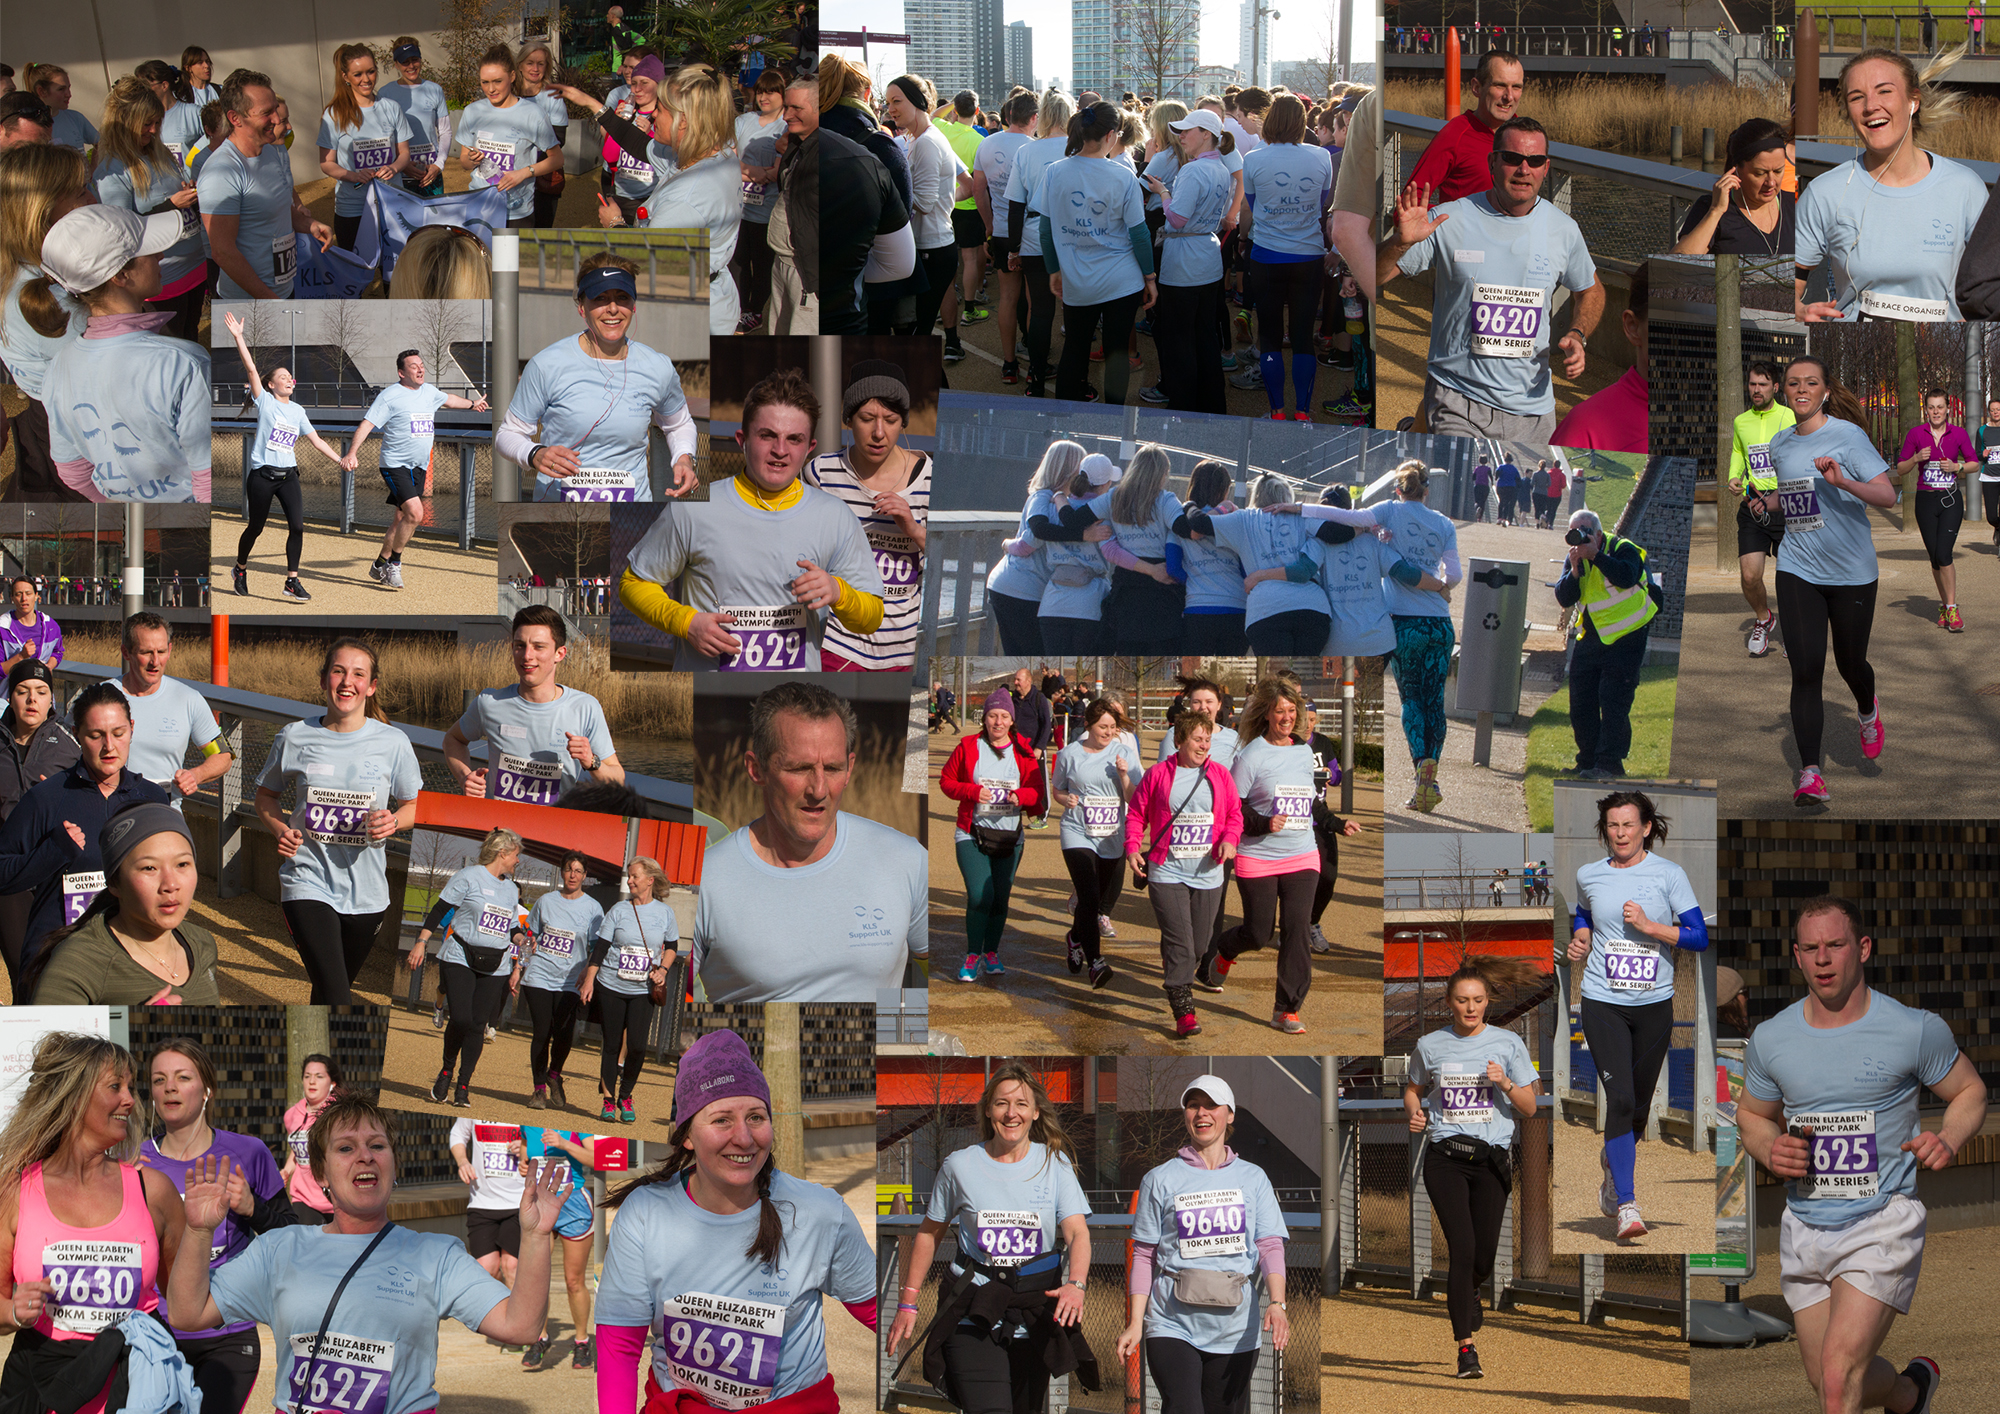 Collage of photos from Saturday's 10k run/walk